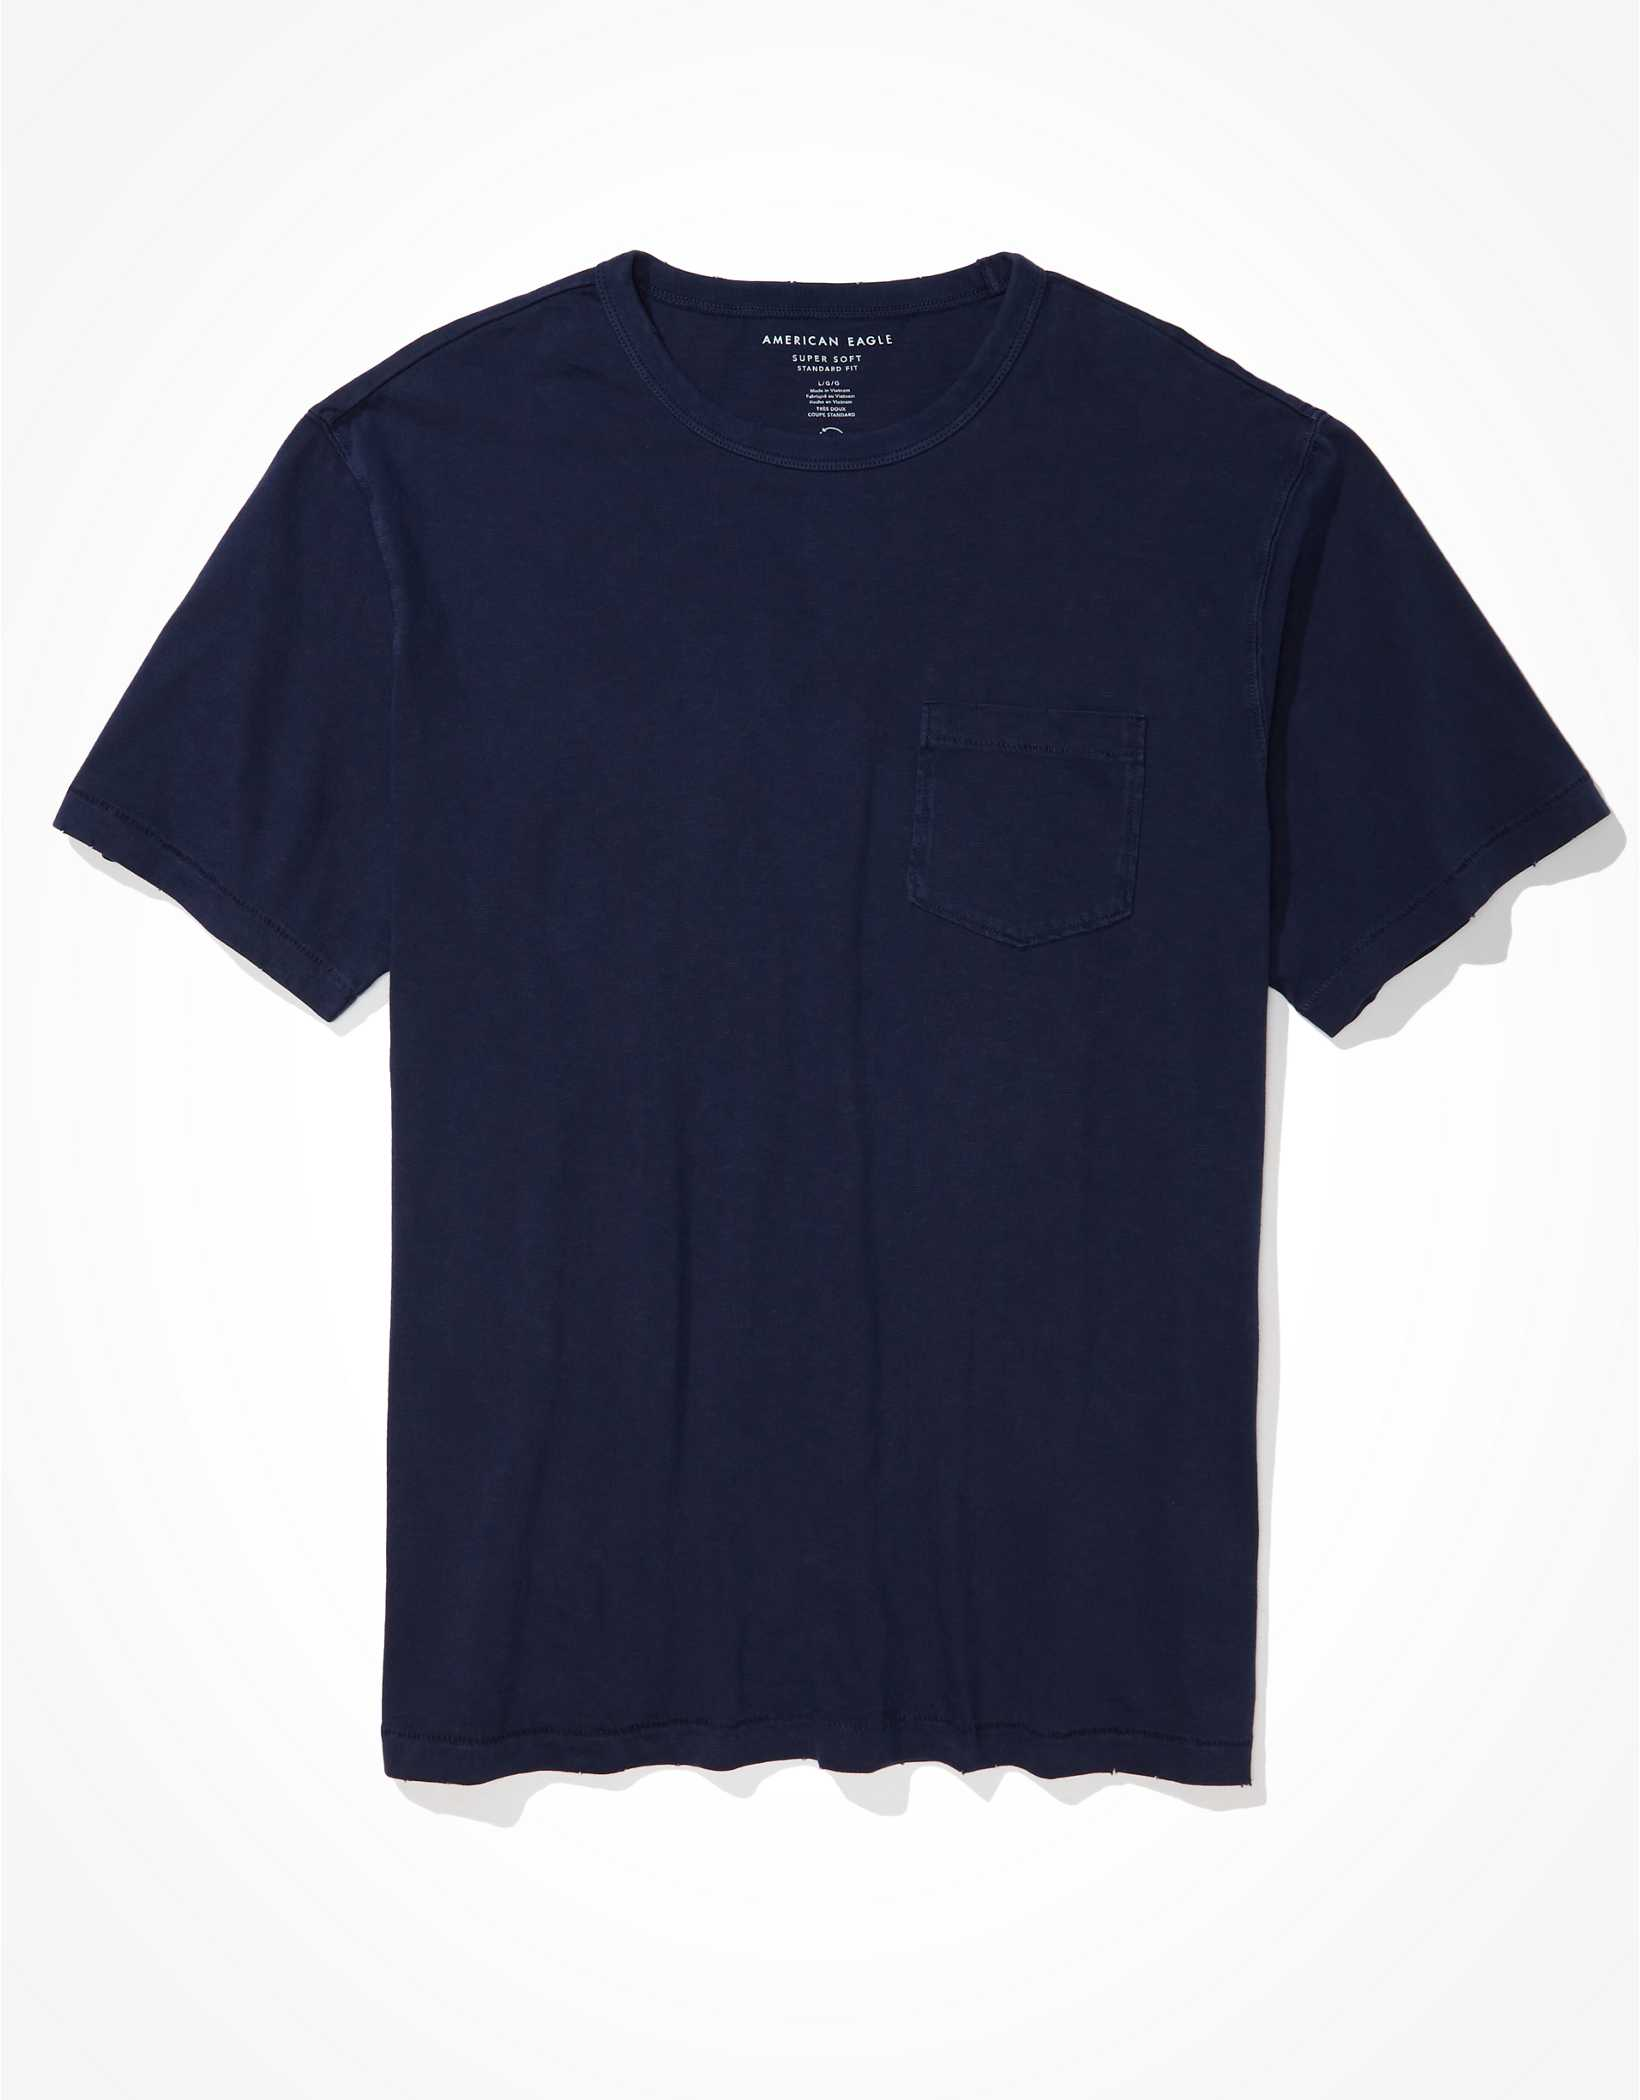 .99 AE Super Soft Pocket T-Shirt + Free shipping over  at American Eagle!